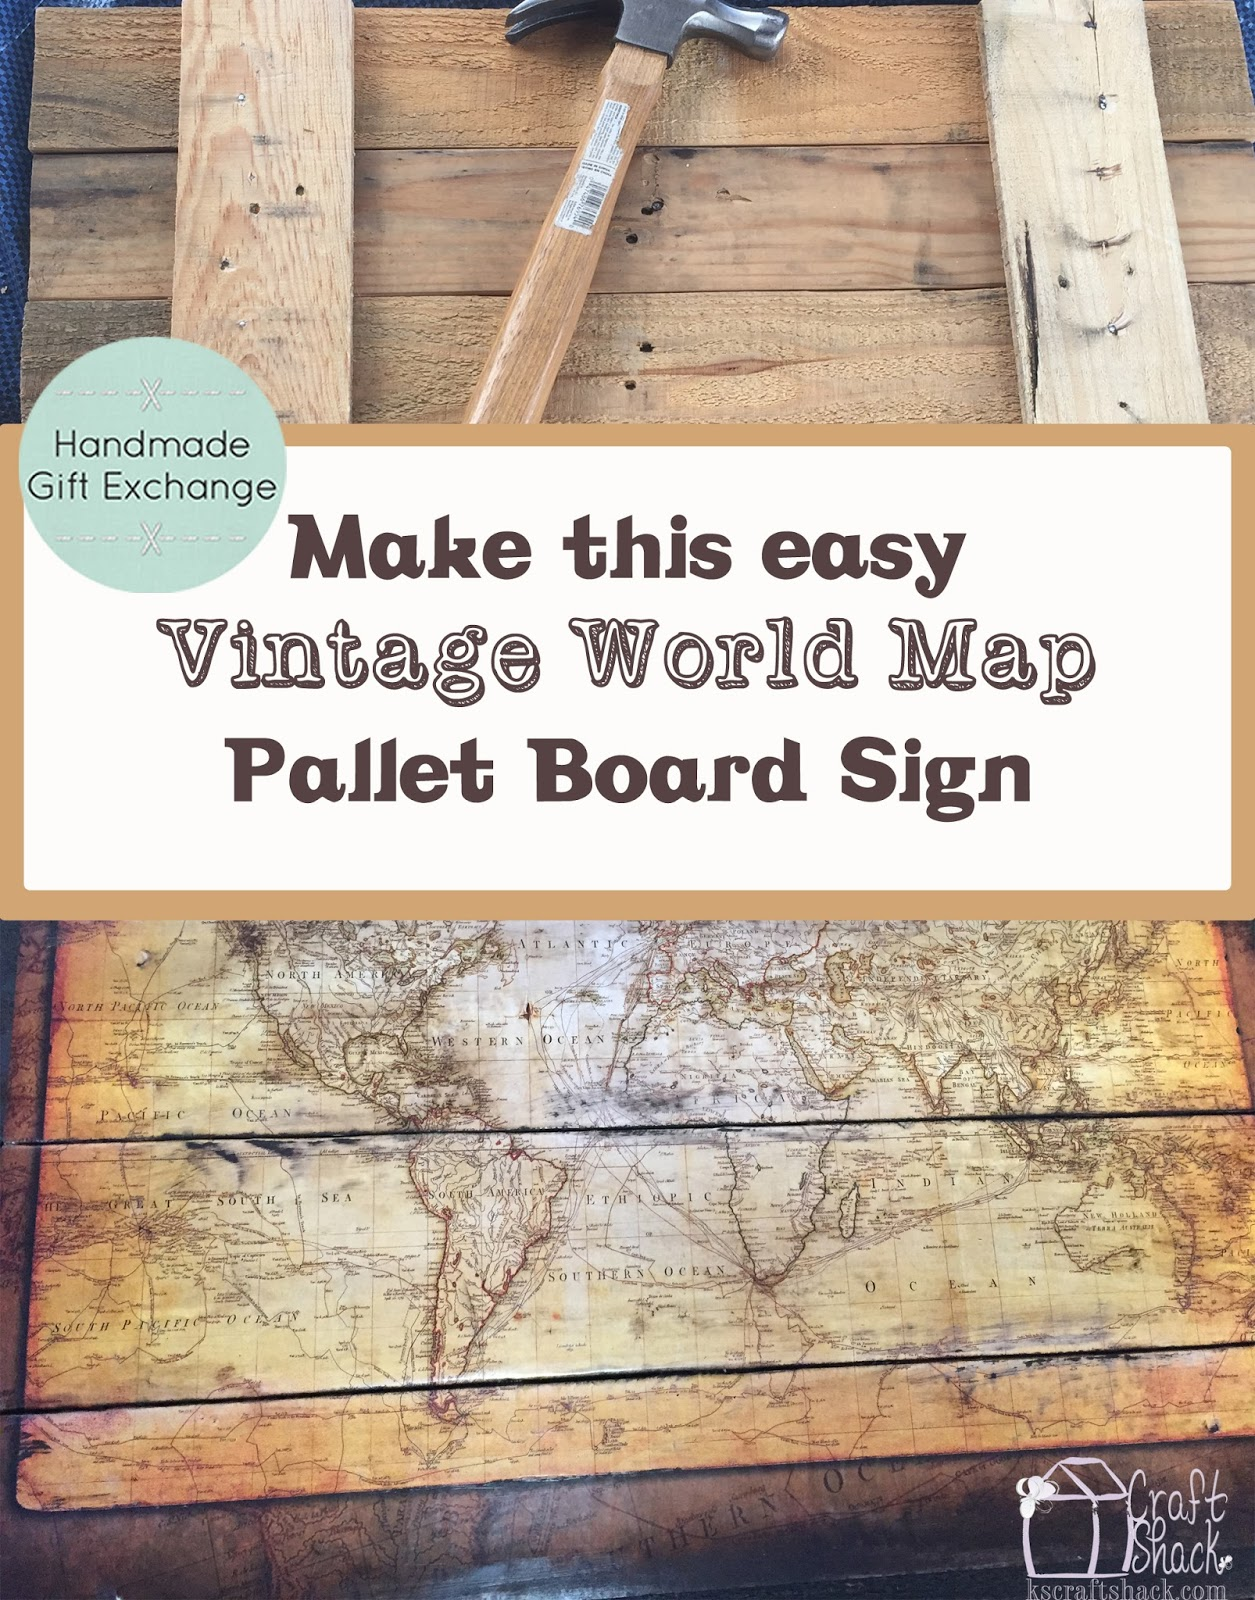 Vintage Map Pallet Board Sign Craft Shack Chronicles - Vintage world map on wood